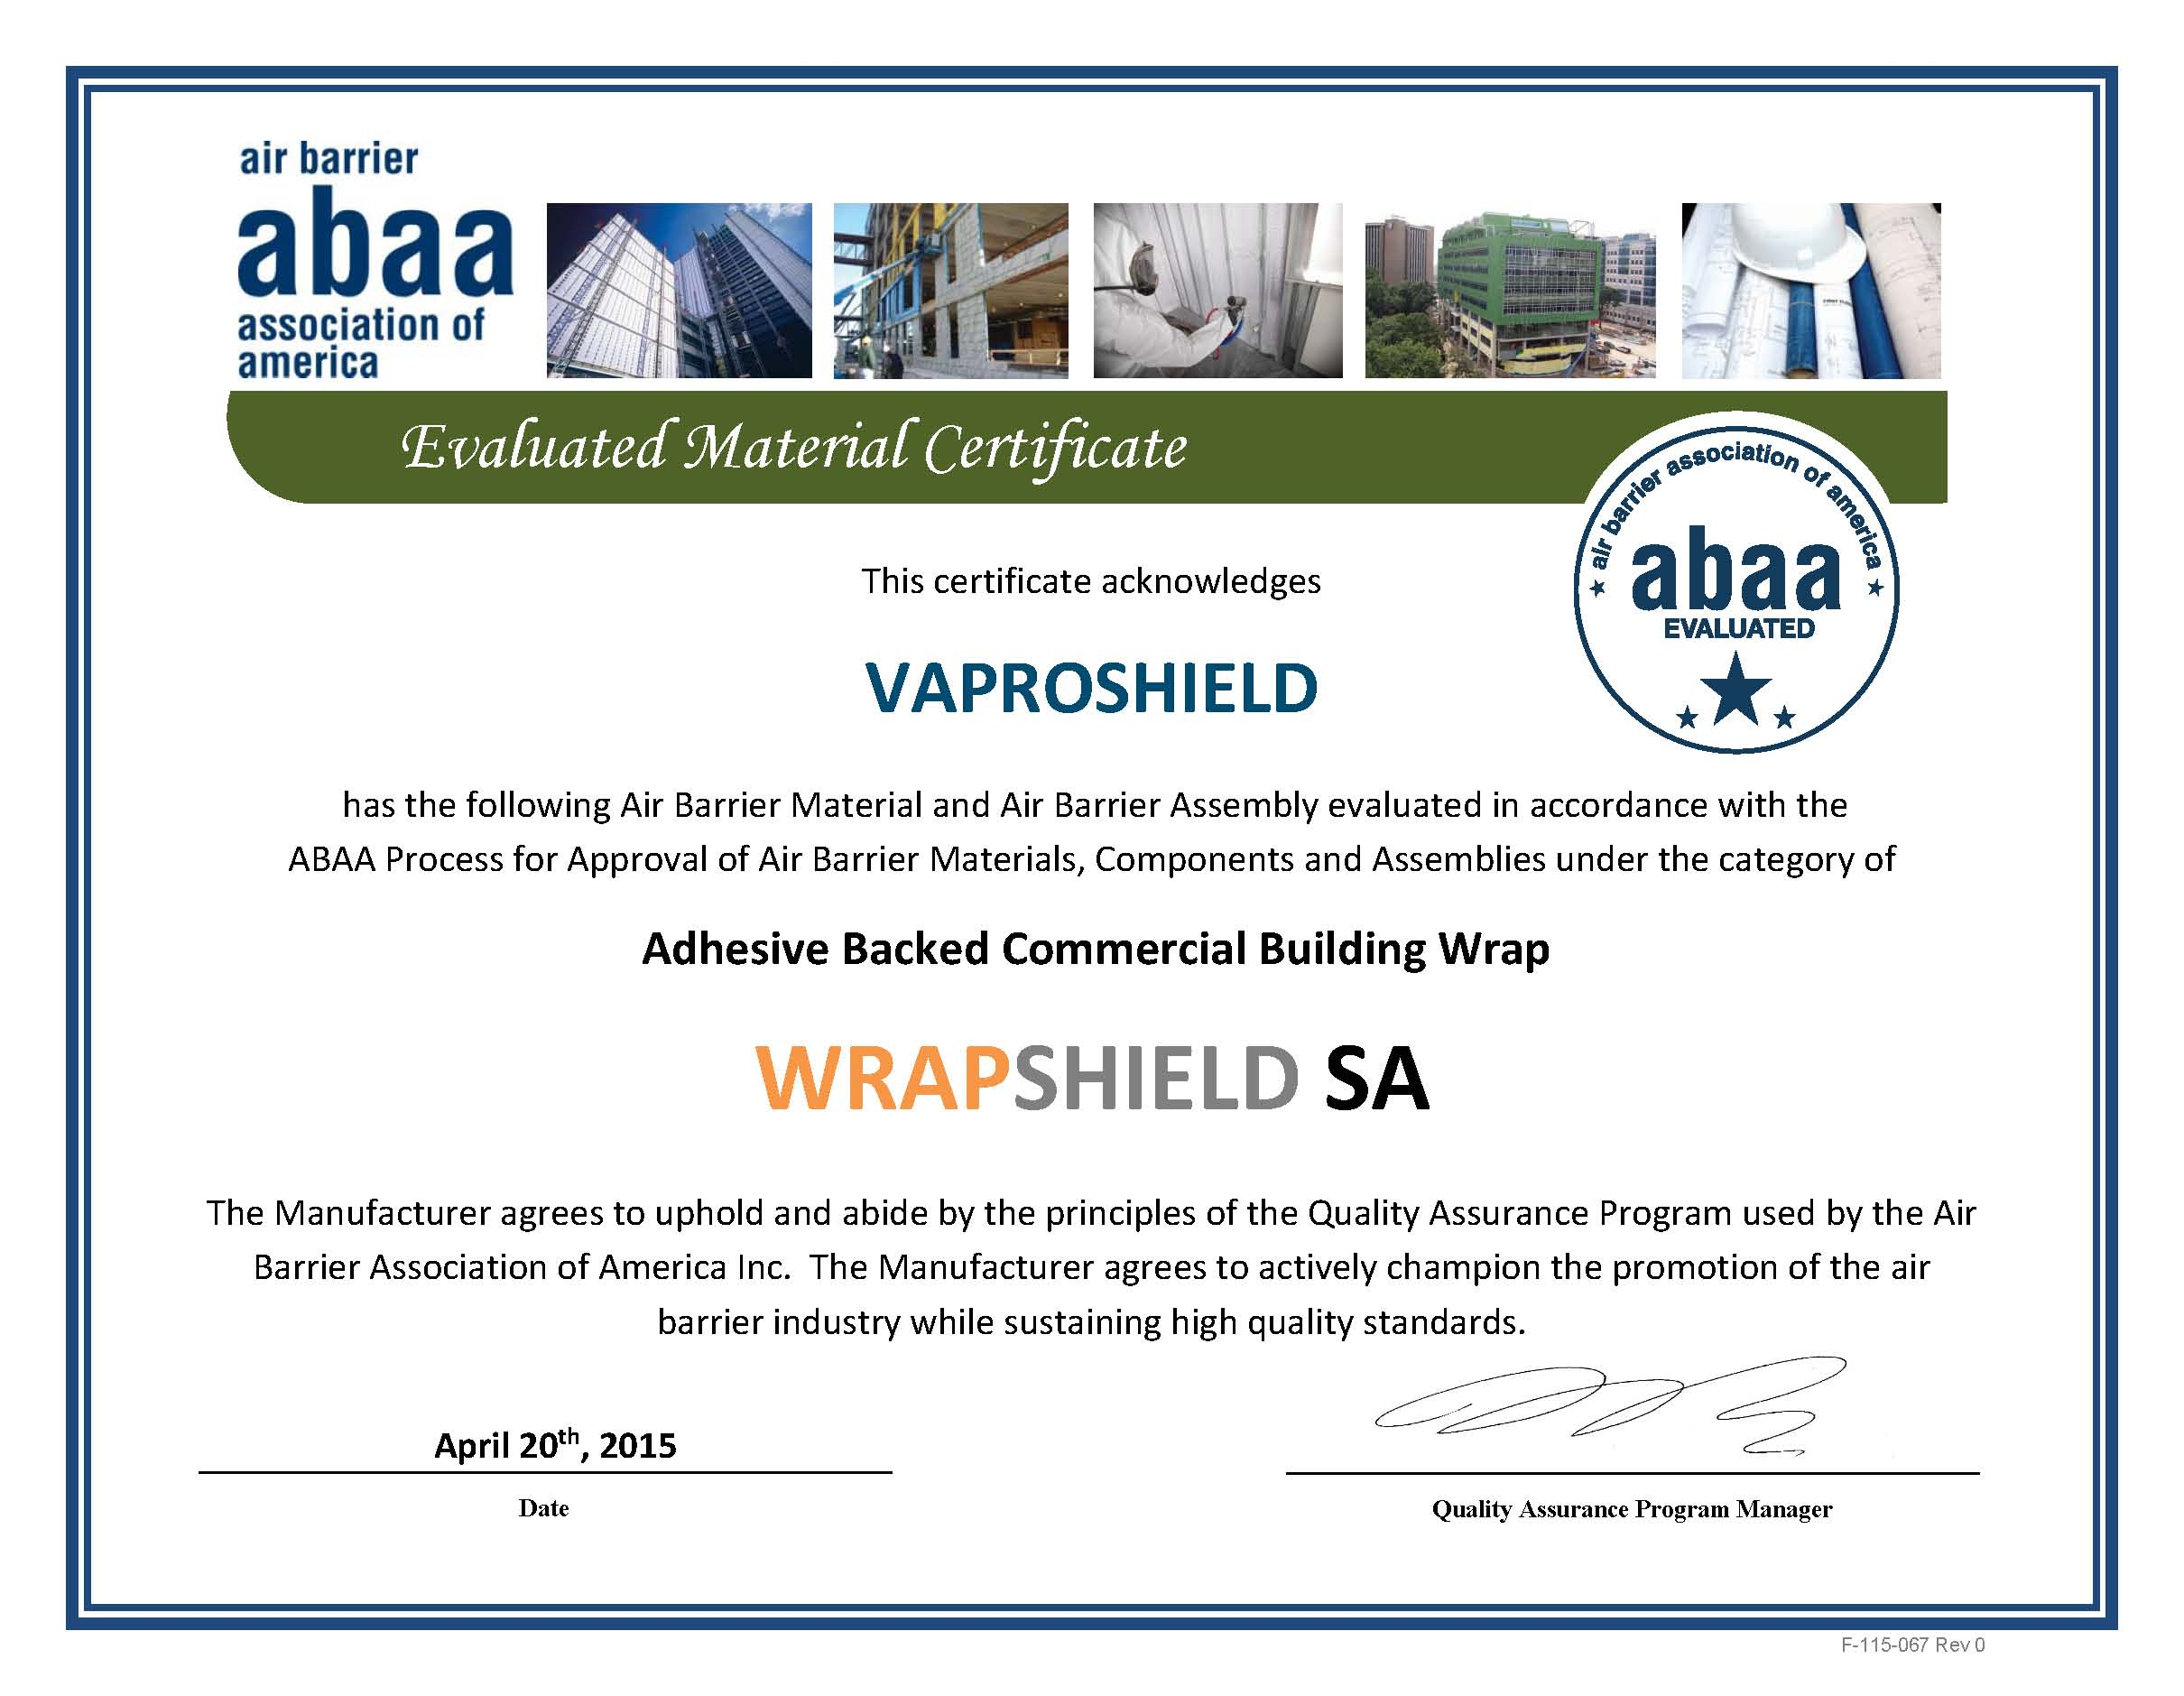 ABAA Air Barrier Material Evaluated Certificate Vaprosheild Wrapshield